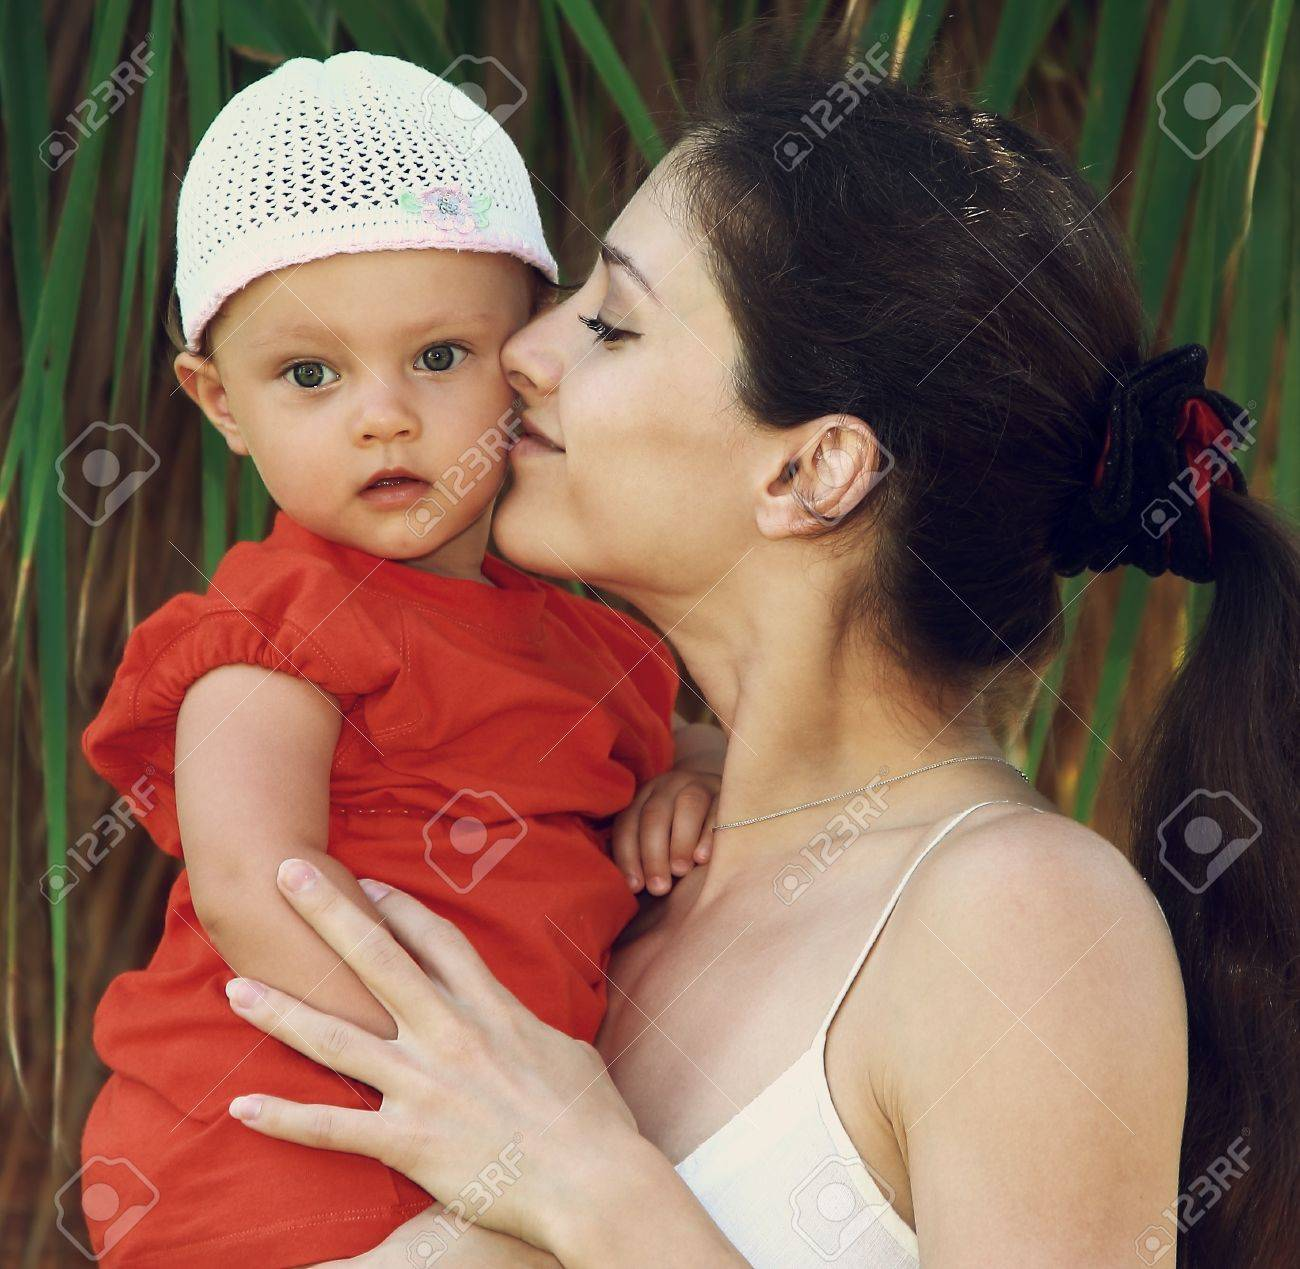 Mother kissing baby girl in hat holding on hands outdoors green trees background Stock Photo - 17057134